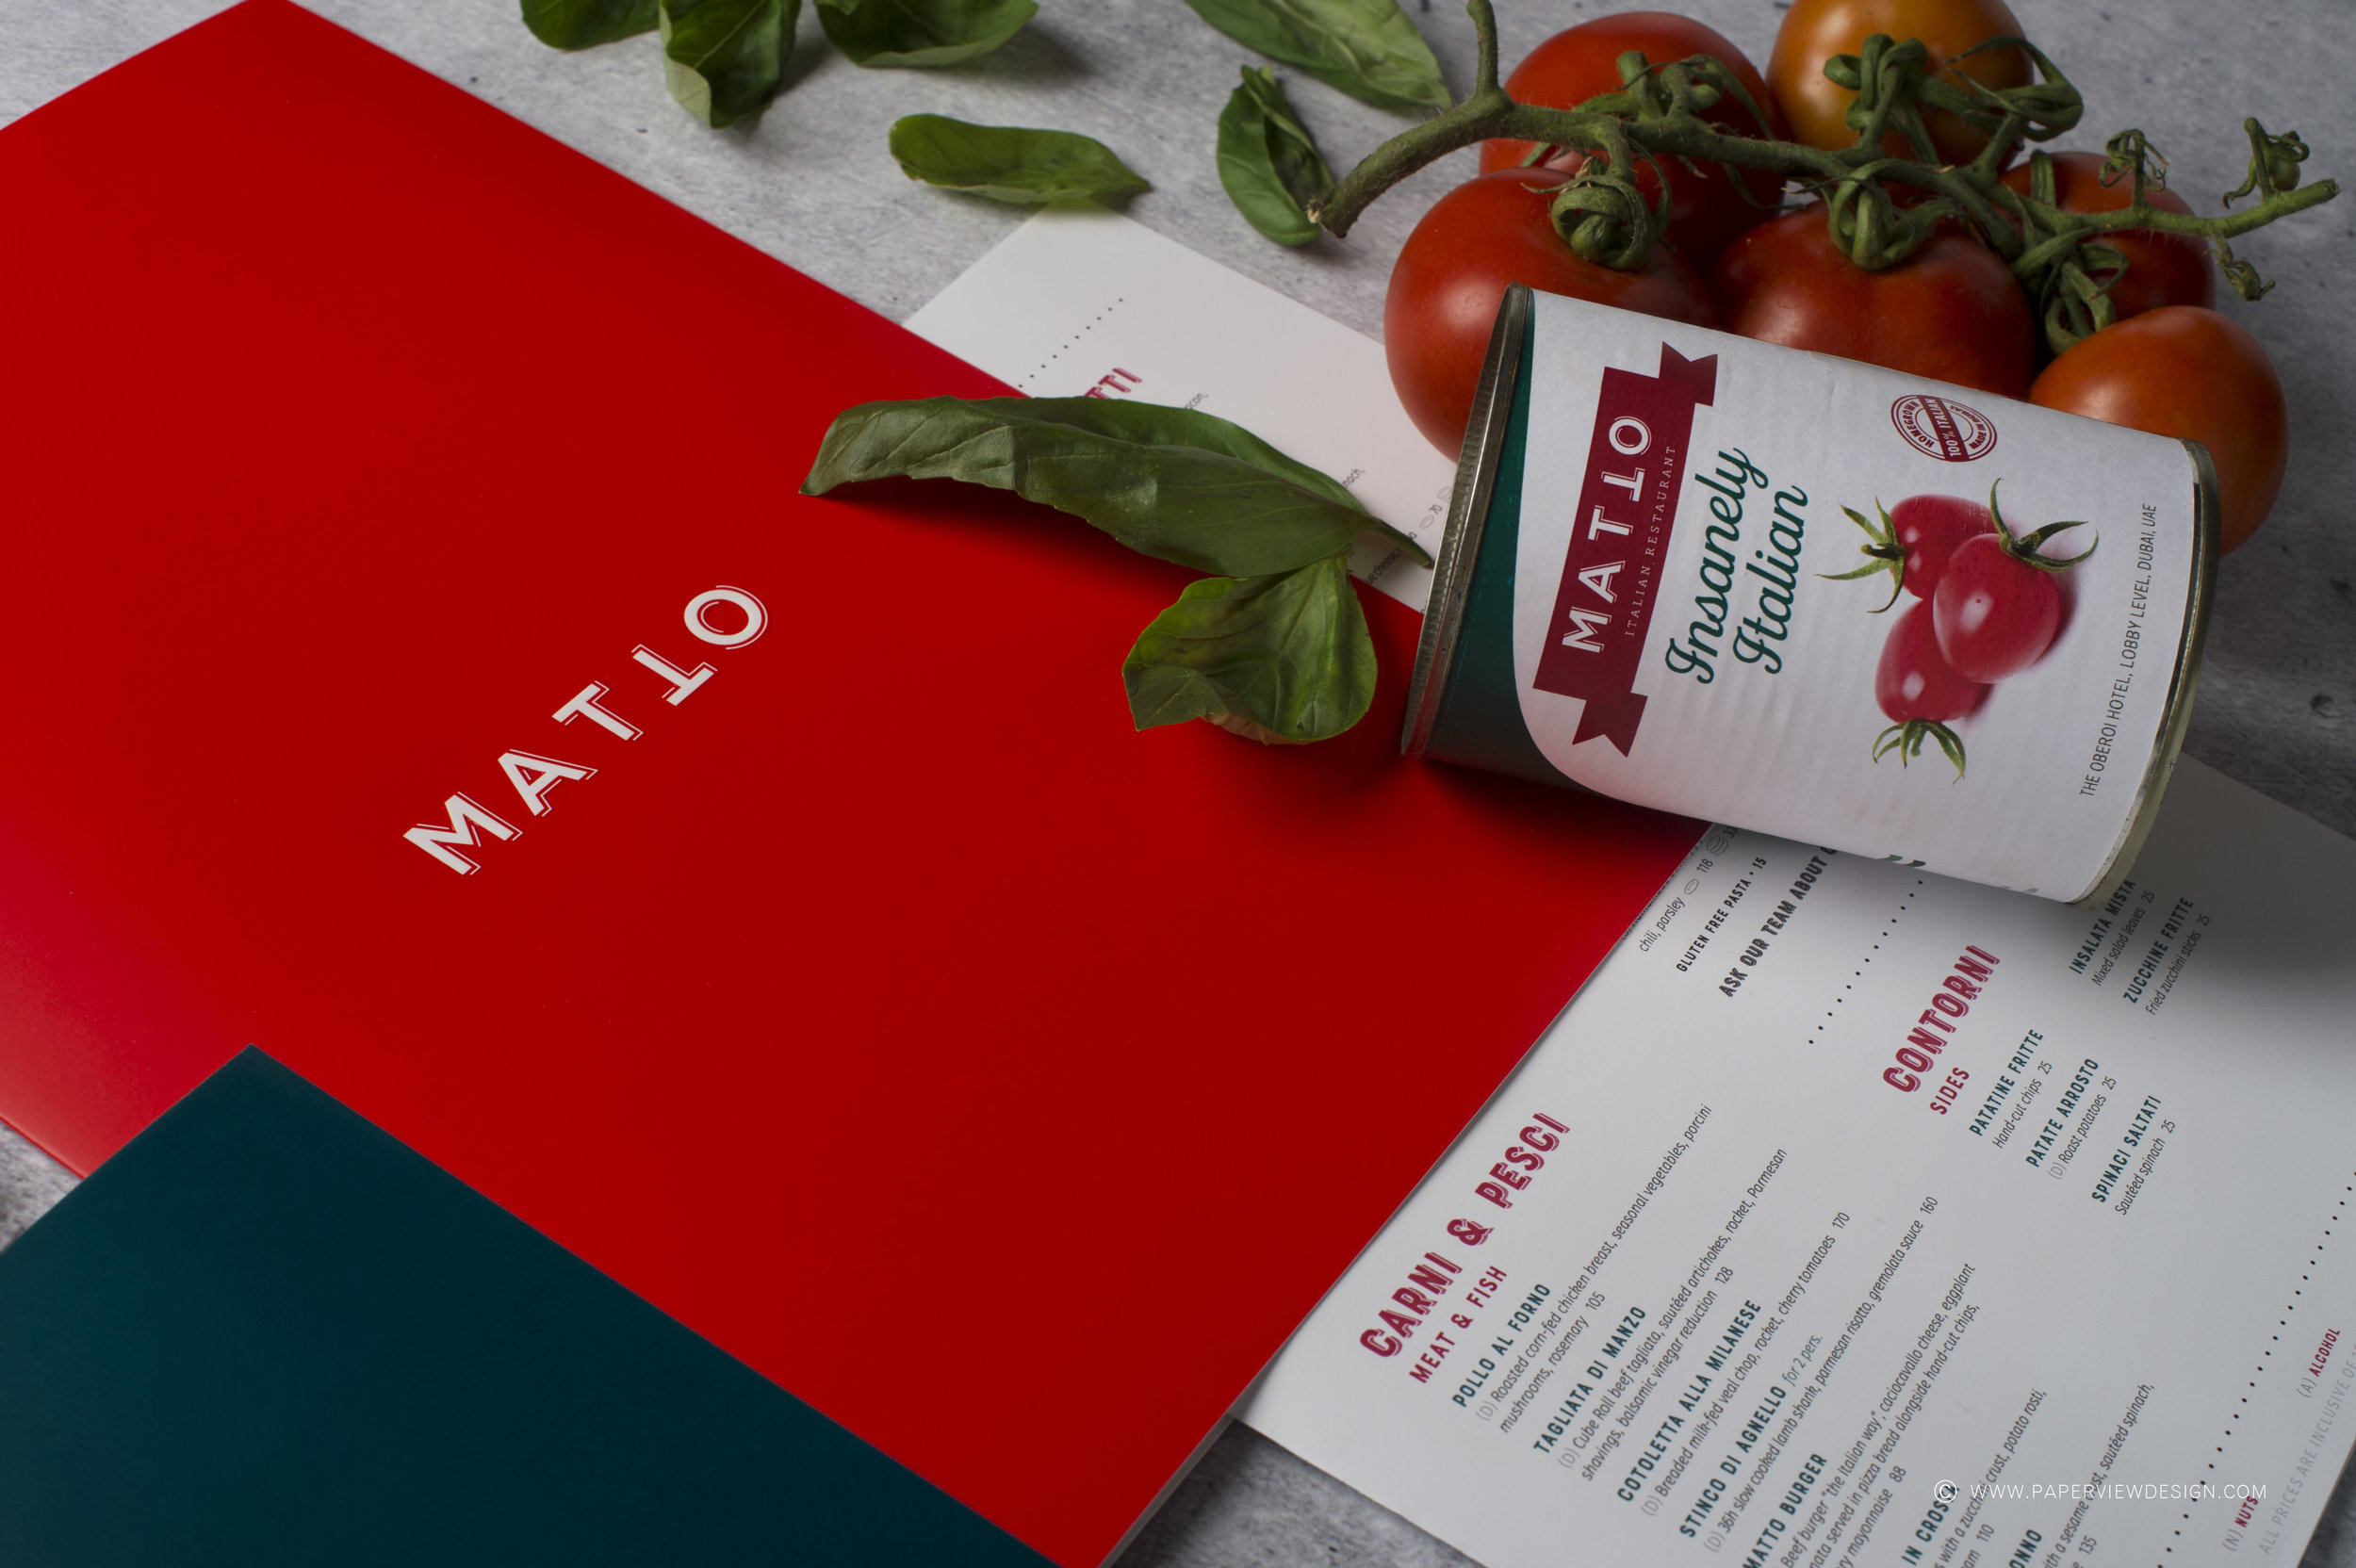 Matto-Restaurant-Menu-Inside-Sheets-Pasta-Meat-Fish-Can-Italian-Branding-Identity-Red-Color-Palette